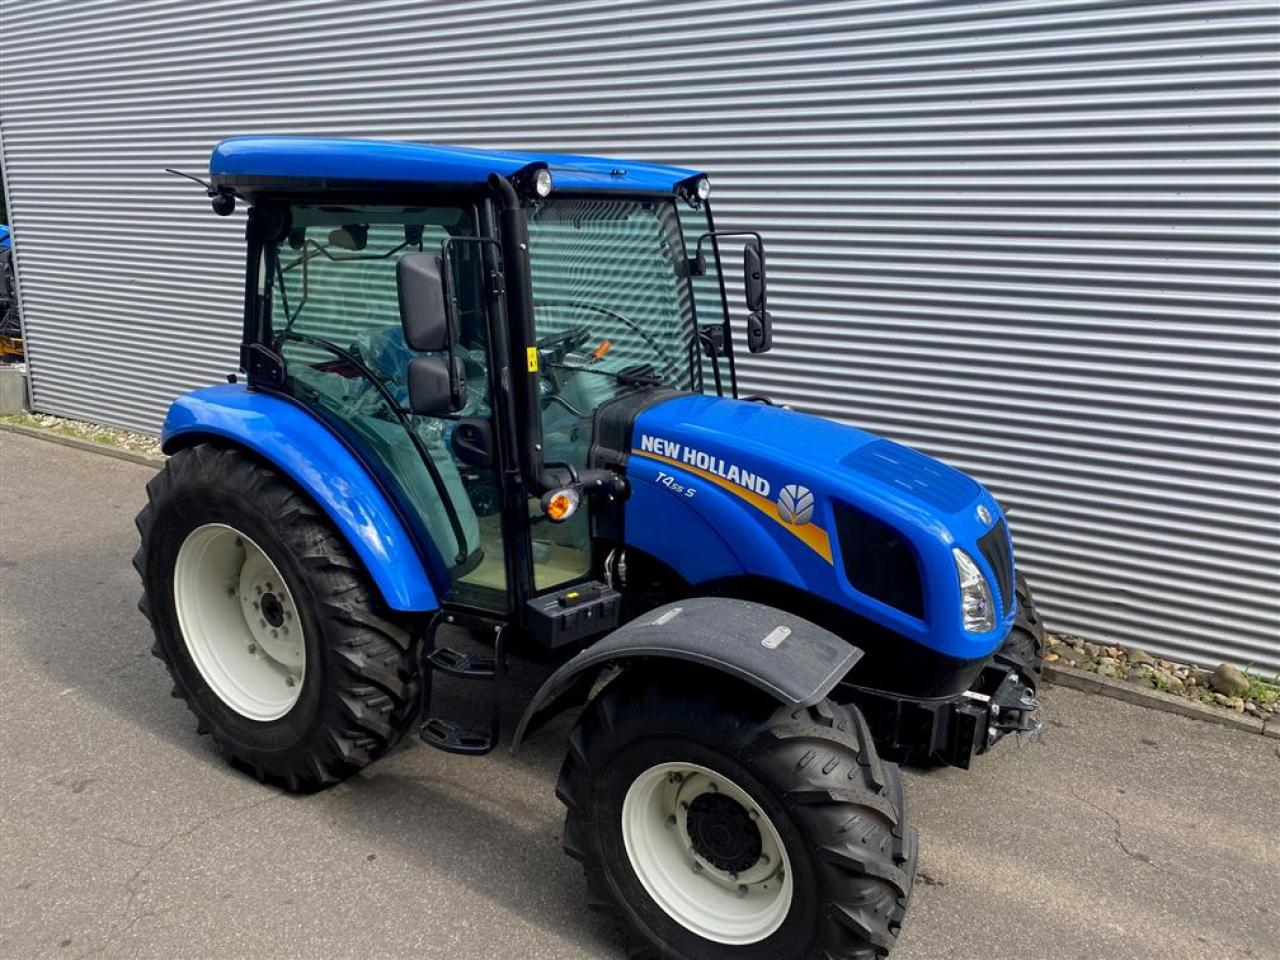 New Holland T4 S.55 CAB